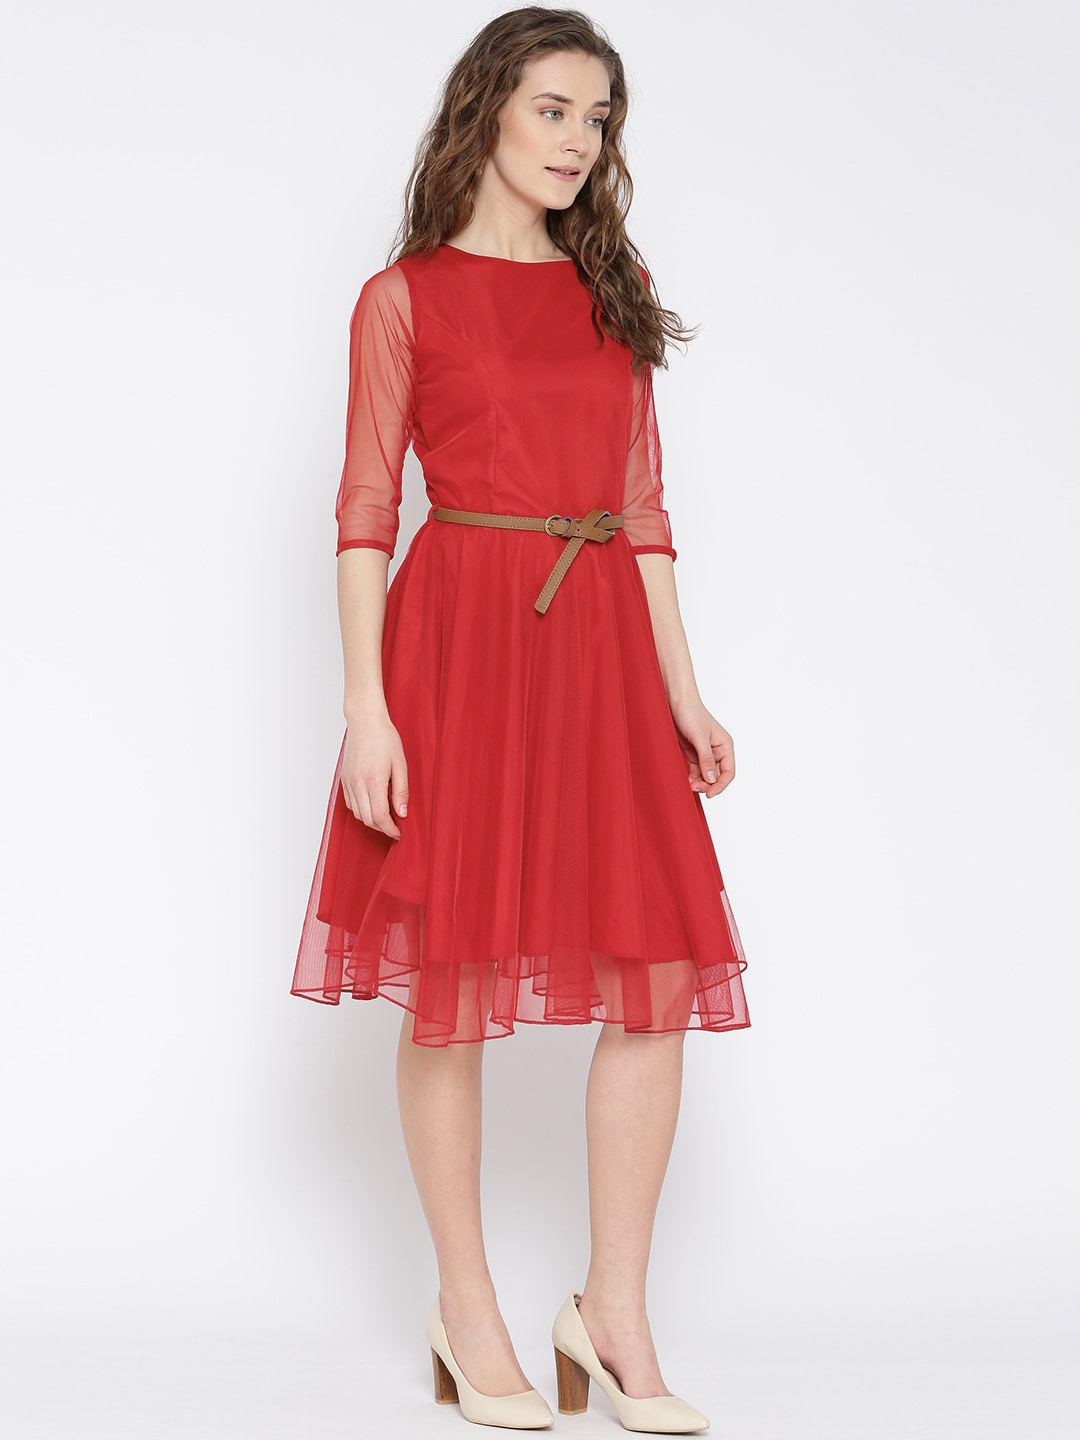 Party Dresses - Buy Designer Party Dress Online | Myntra